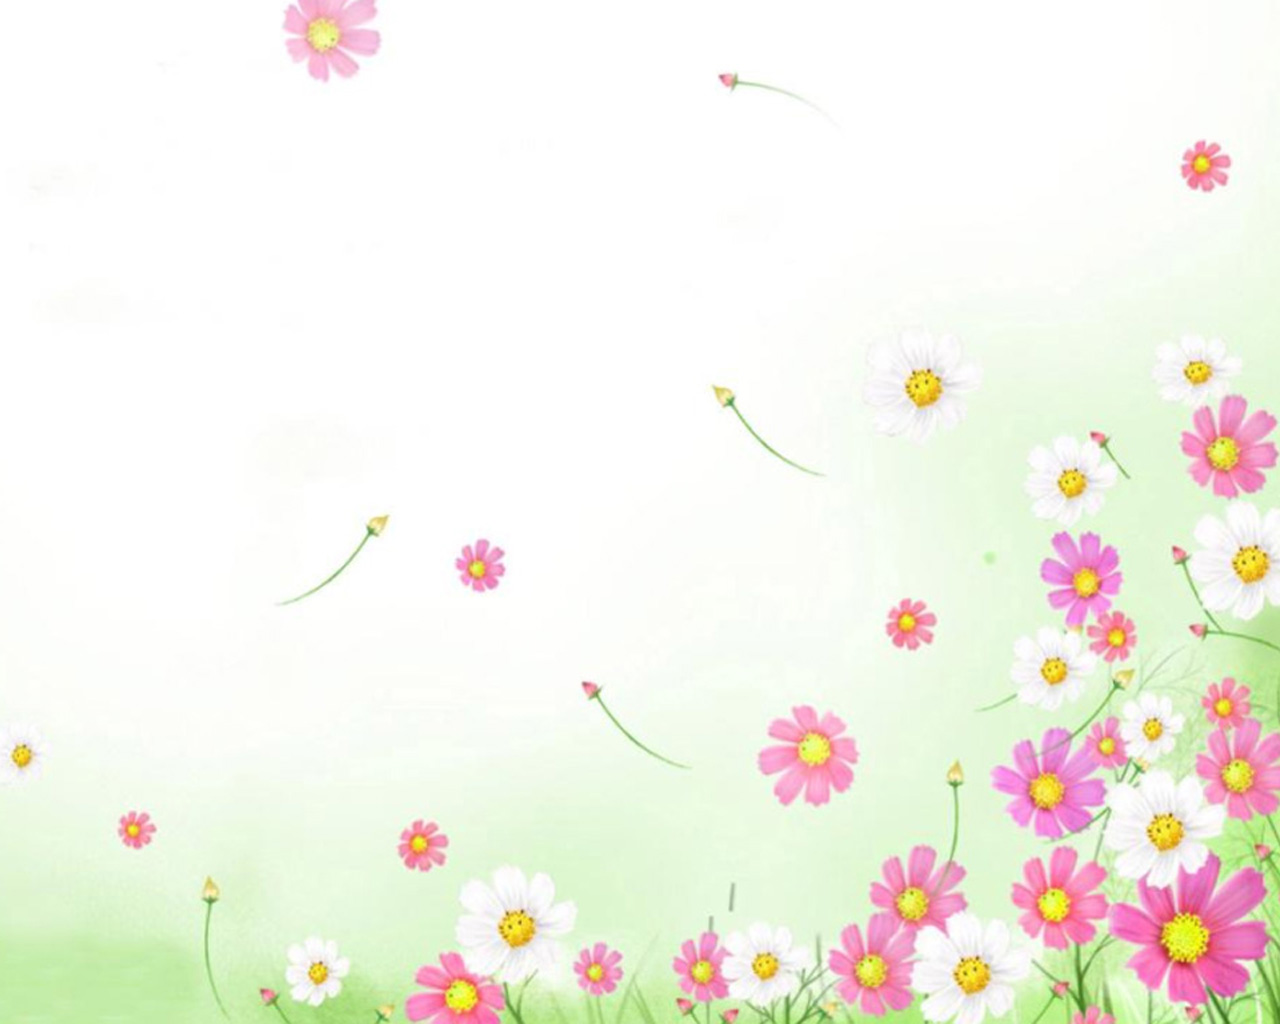 74 background flower image Pictures picture transparent stock